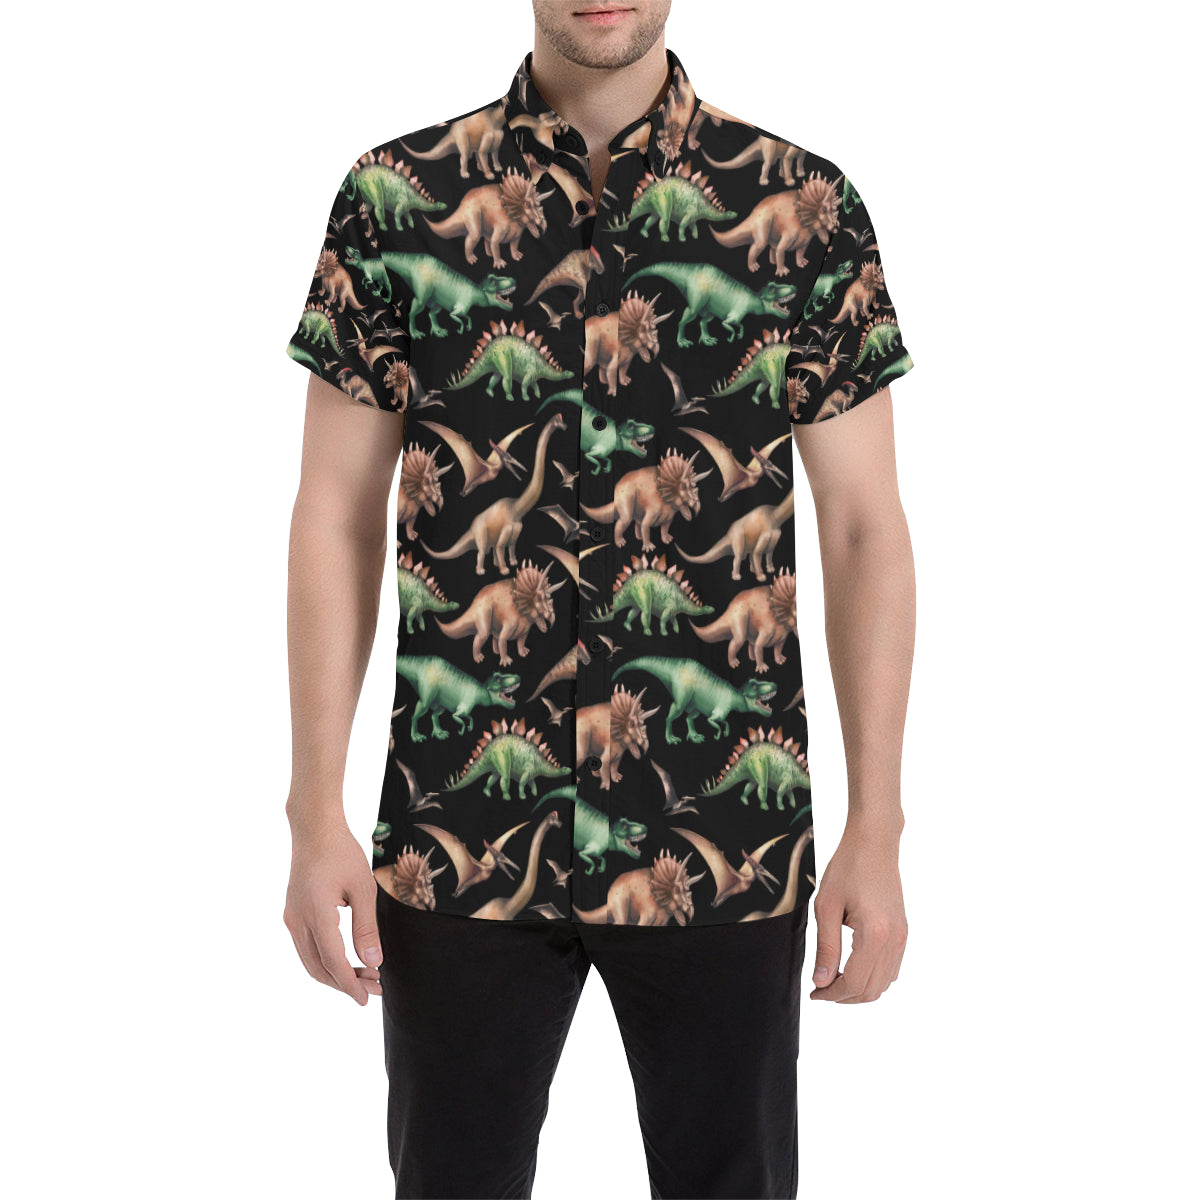 Dinosaur Print Pattern Men Button Up Shirt